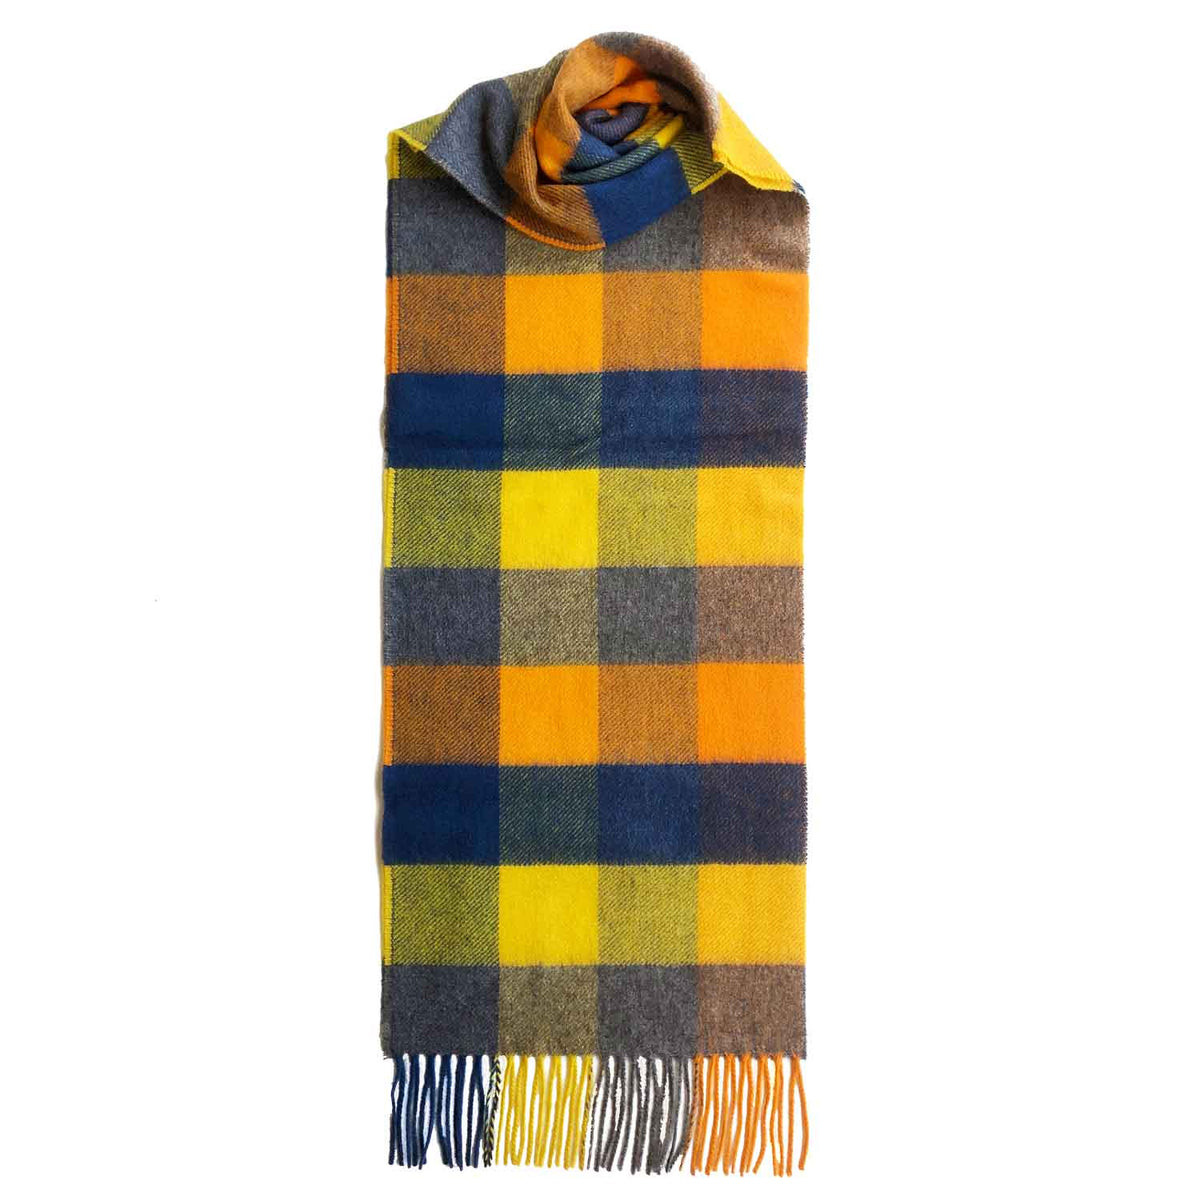 Lomond Cashmere | Yellow Blue | Check Cashmere Scarf With Fringes | Made in Scotland | Shop at The Cashmere Choice | London